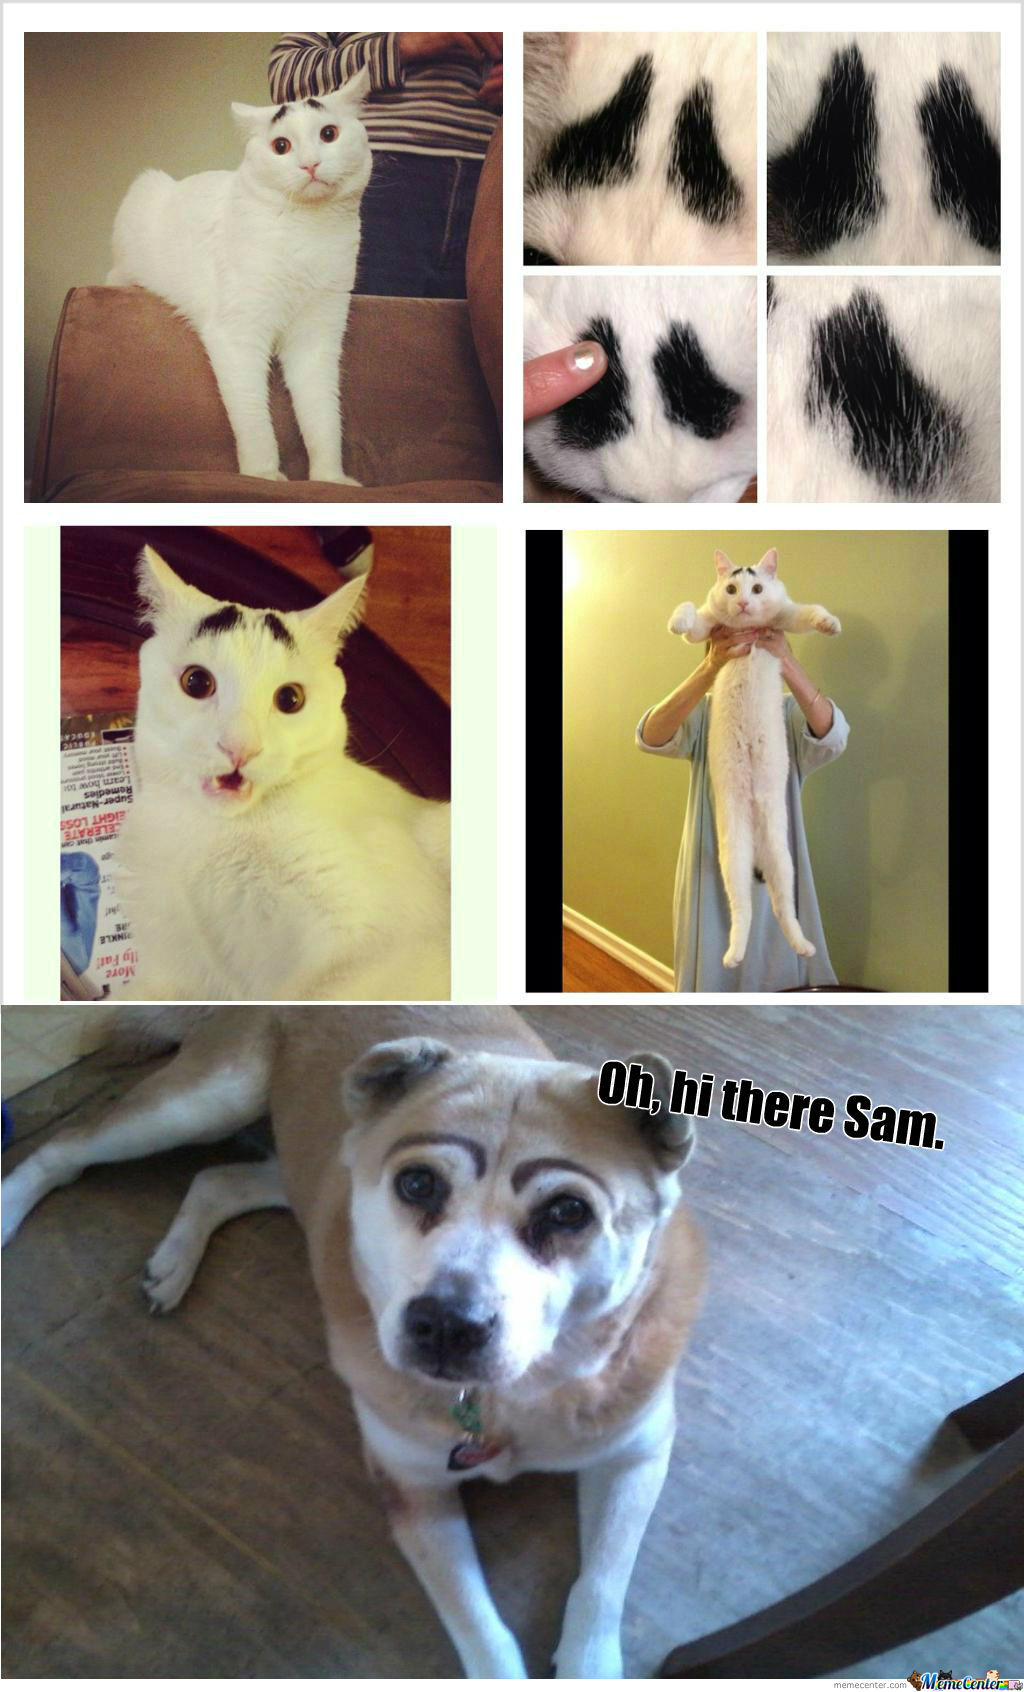 [RMX] Meet Sam, The Cat With Eyebrows.